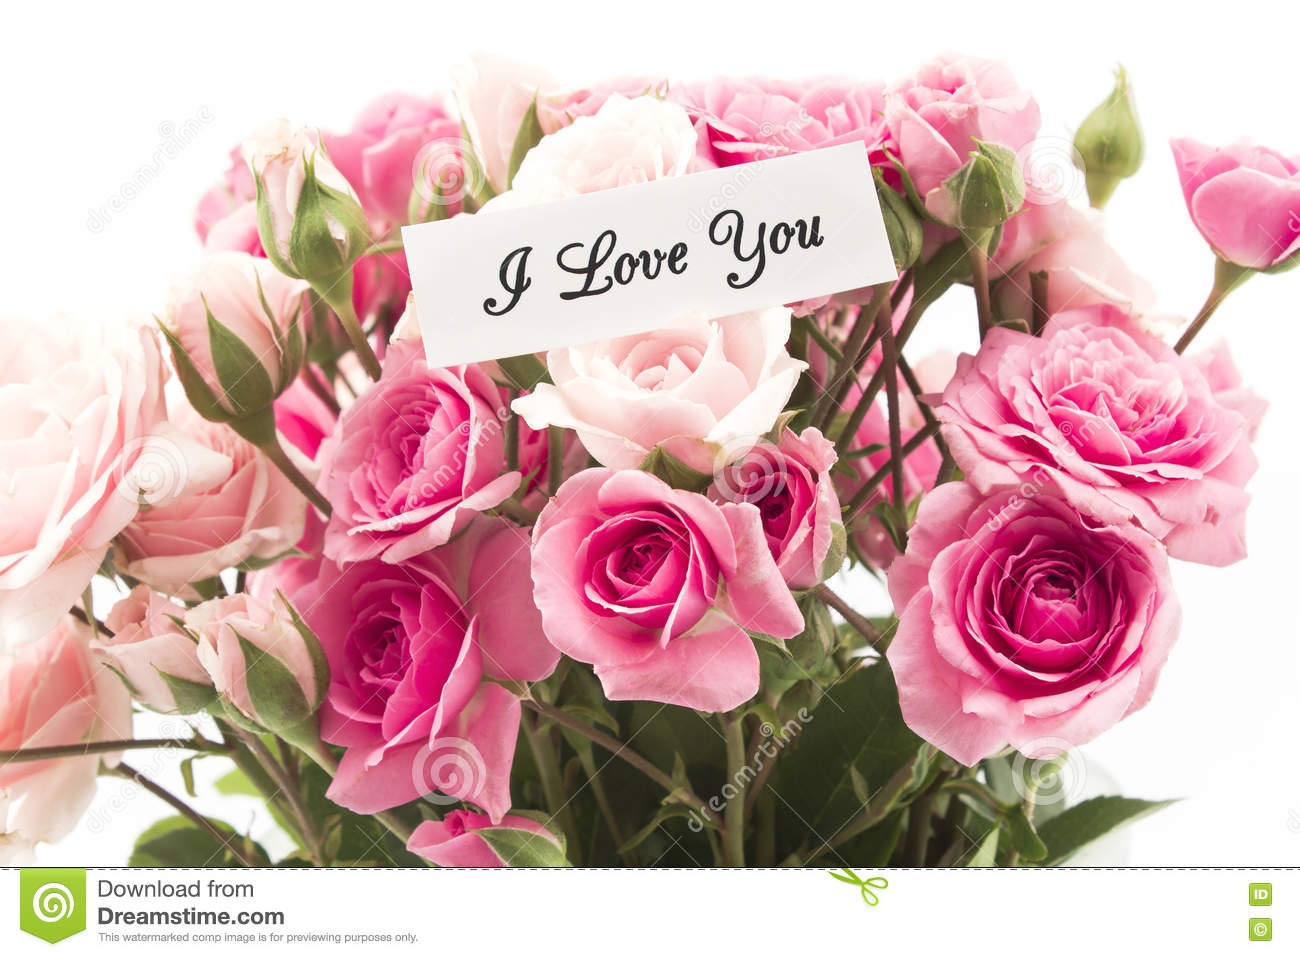 i love you card with bouquet of pink roses stock image image 74565555. Black Bedroom Furniture Sets. Home Design Ideas